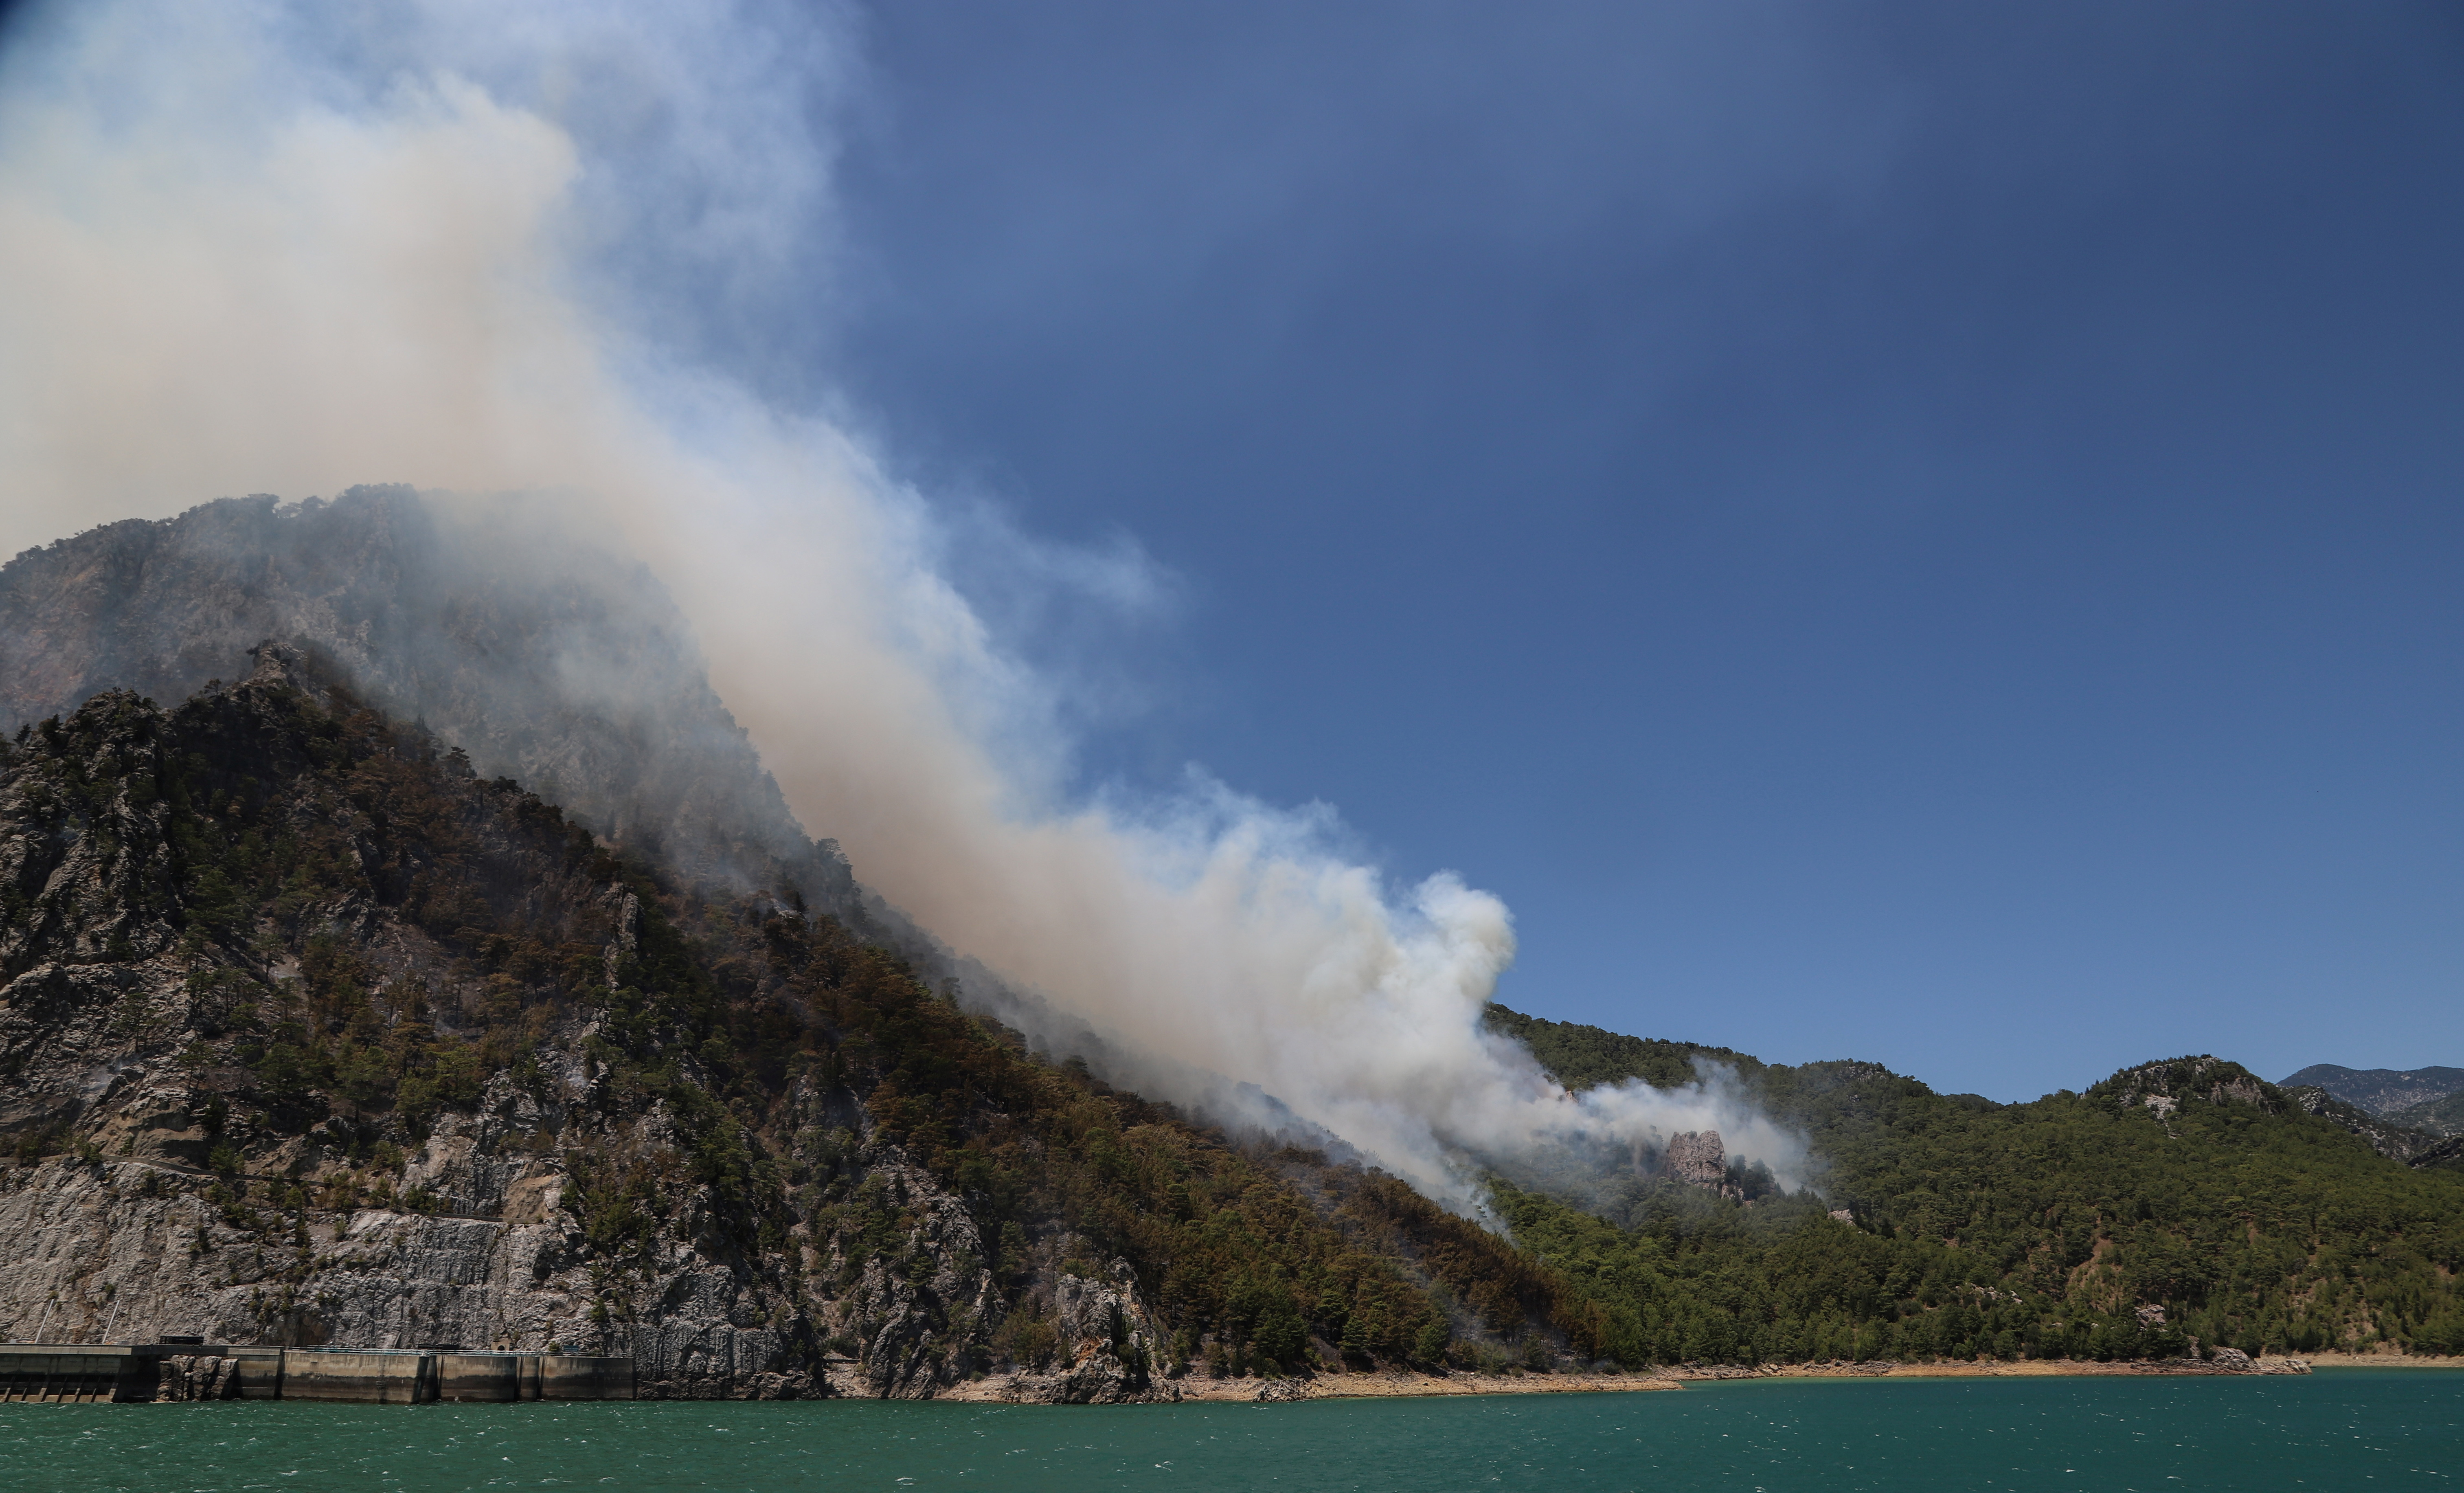 A forest fire burns near the town of Manavgat, east of the resort city of Antalya, Turkey, July 29, 2021. REUTERS/Kaan Soyturk